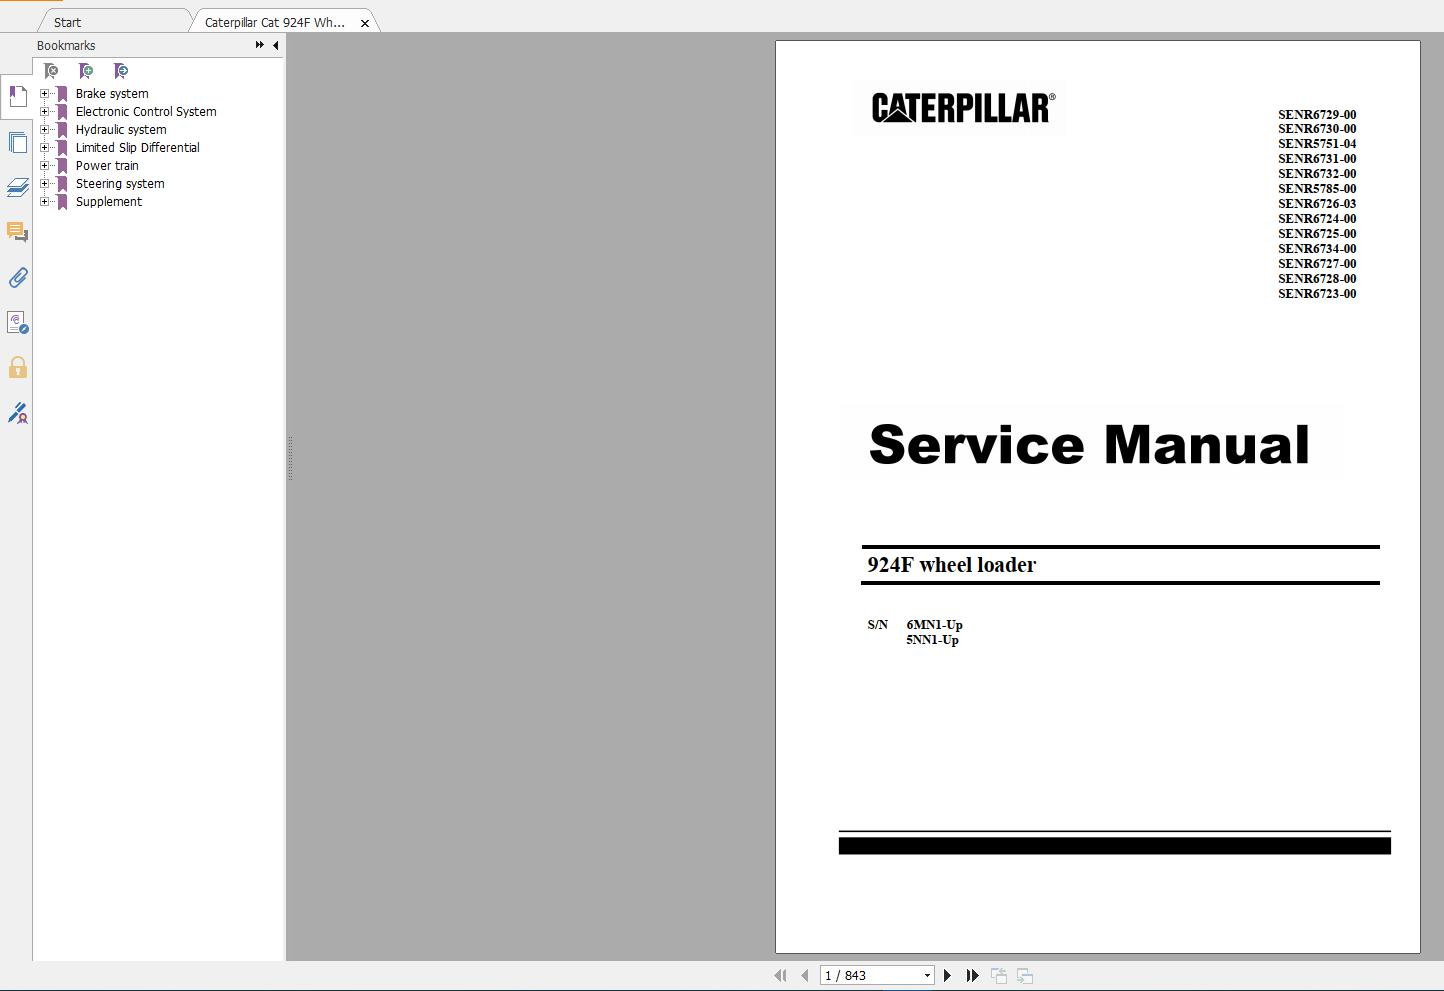 Caterpillar Cat 924f Wheel Loader Service Manual Auto Repair Manual Forum Heavy Equipment Forums Download Repair Workshop Manual